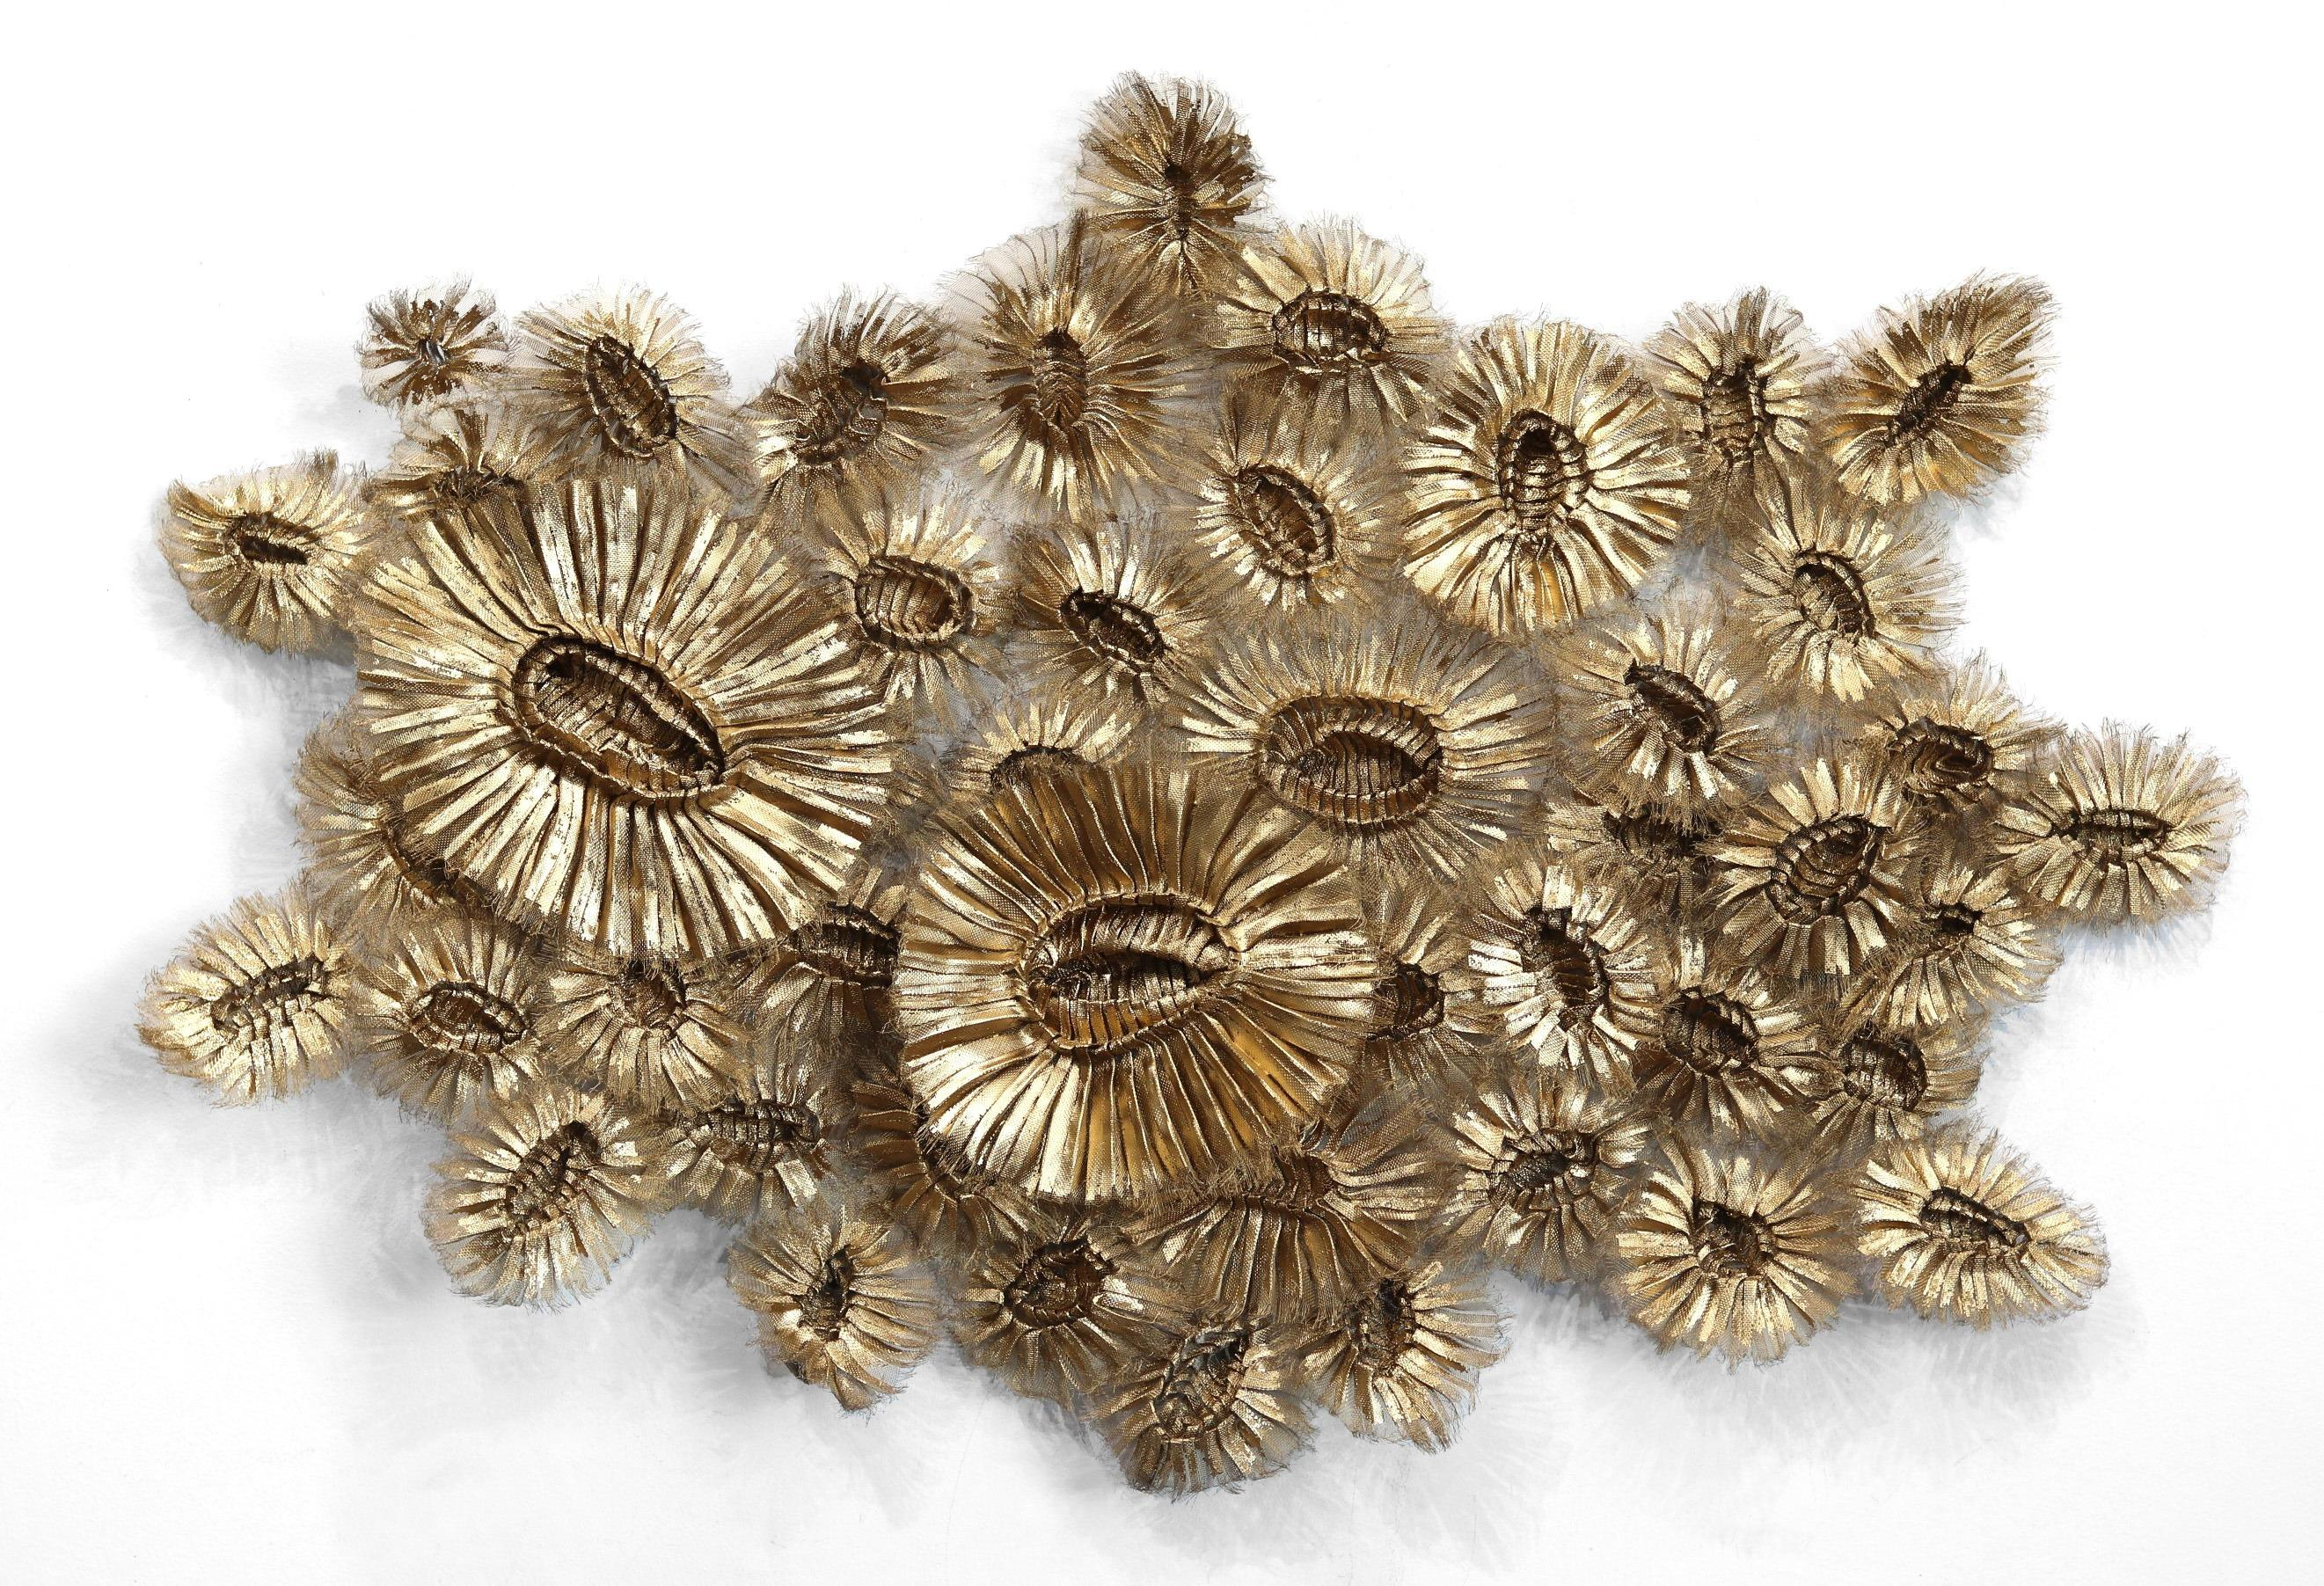 Flora Chanel Gilded  - Large Three-Dimensional Wall Art